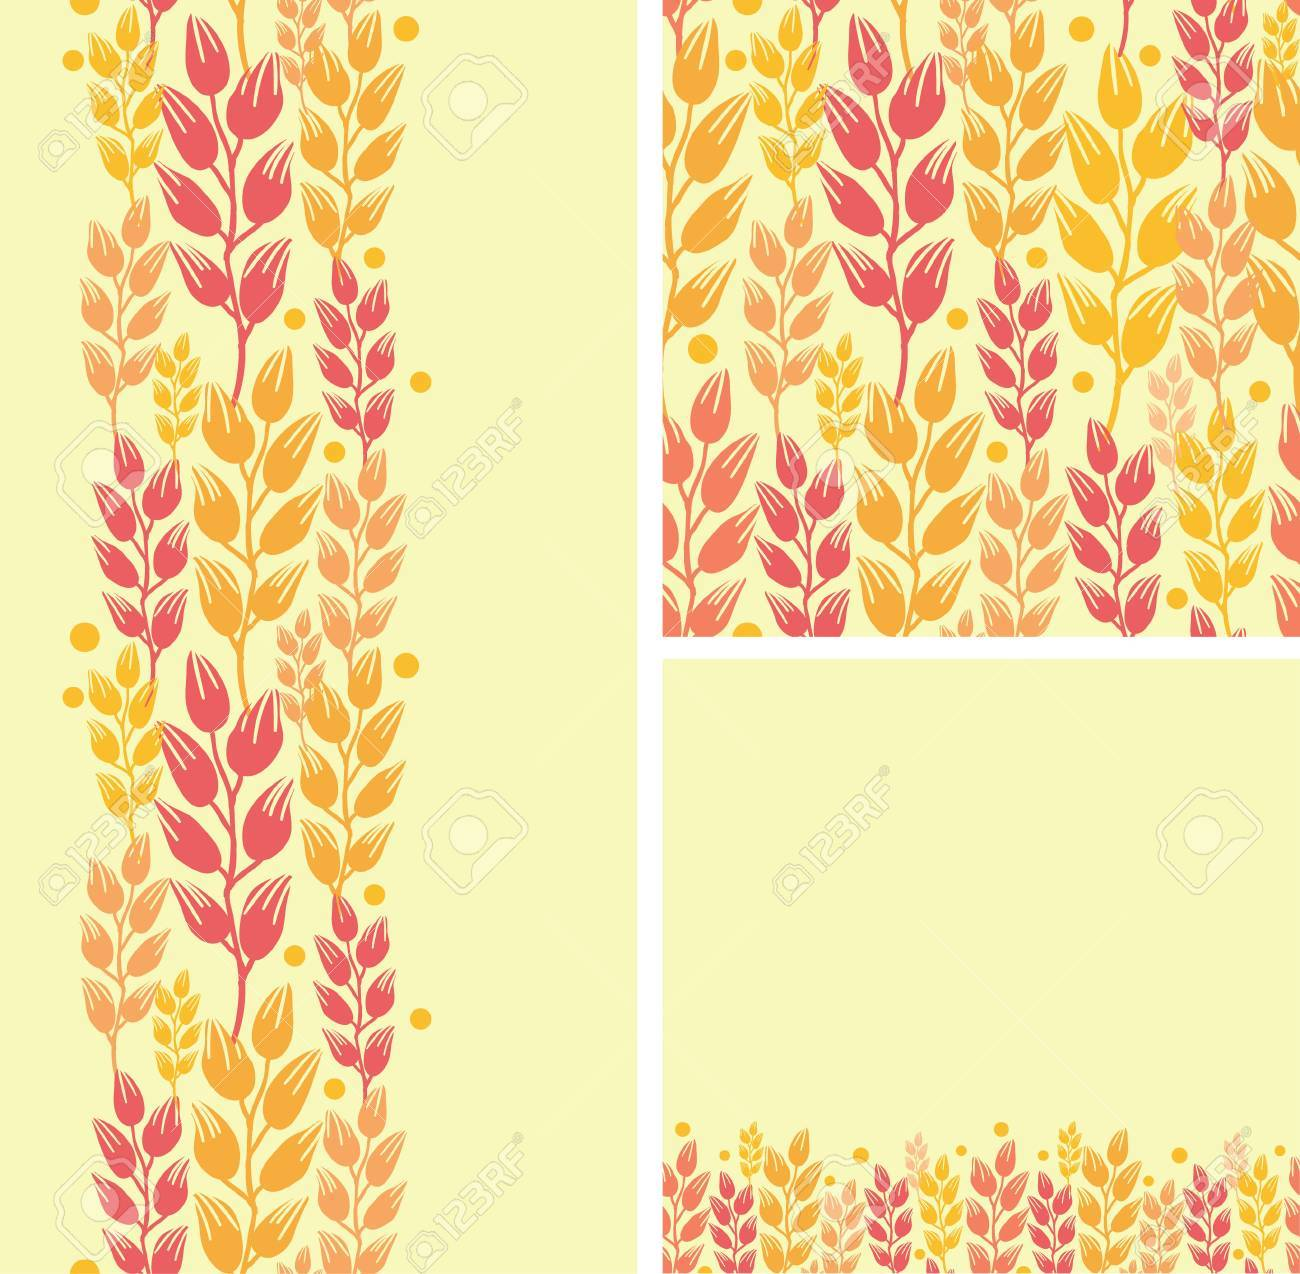 Set of wheat plants seamless pattern and borders backgrounds Stock Vector - 16820393